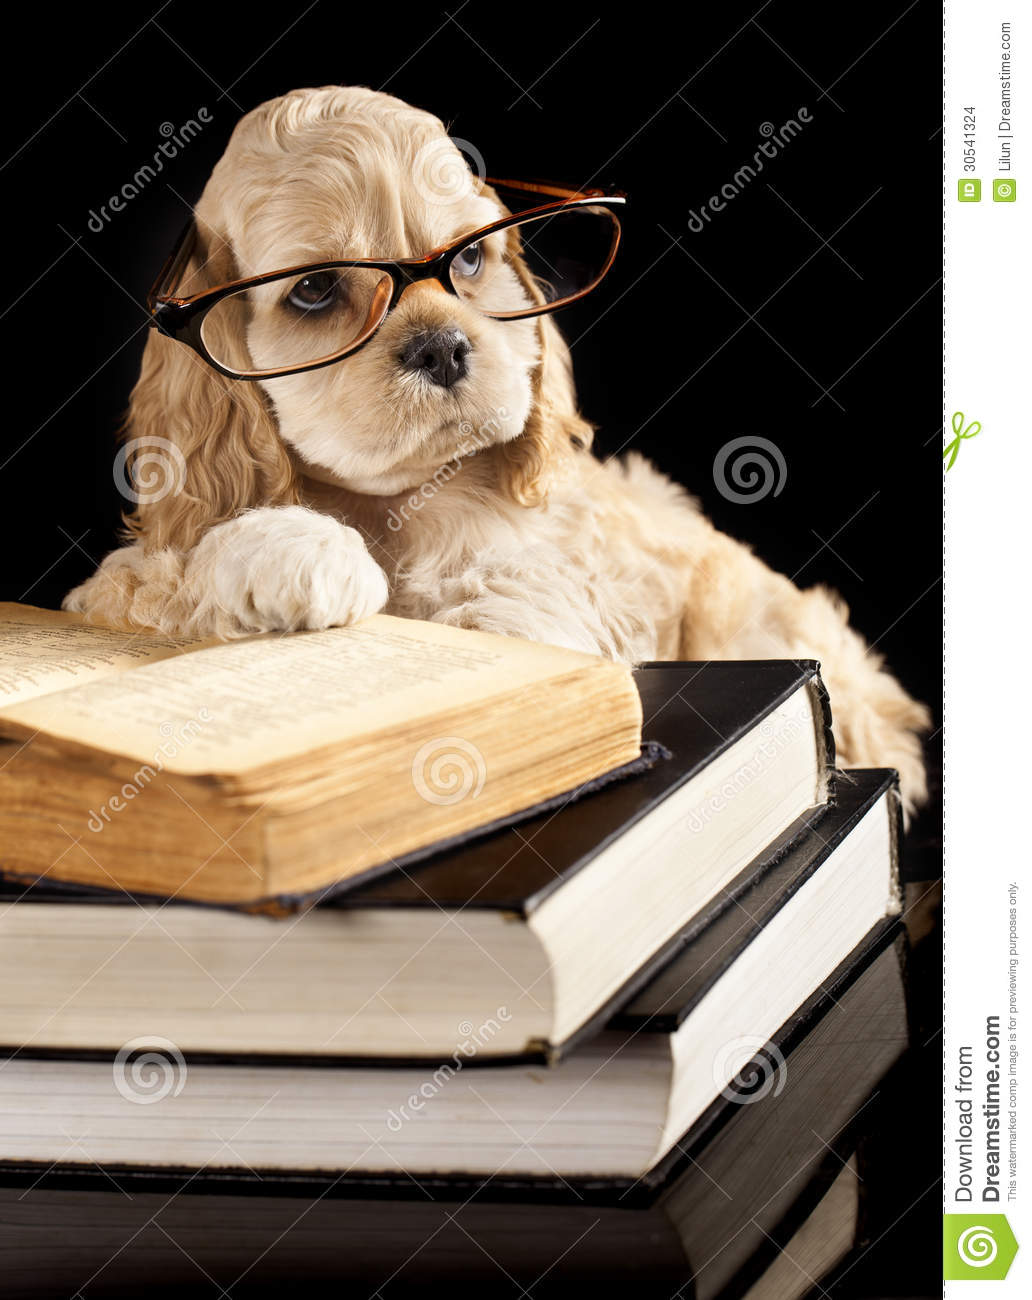 Cute Puppy Wearing Glasses